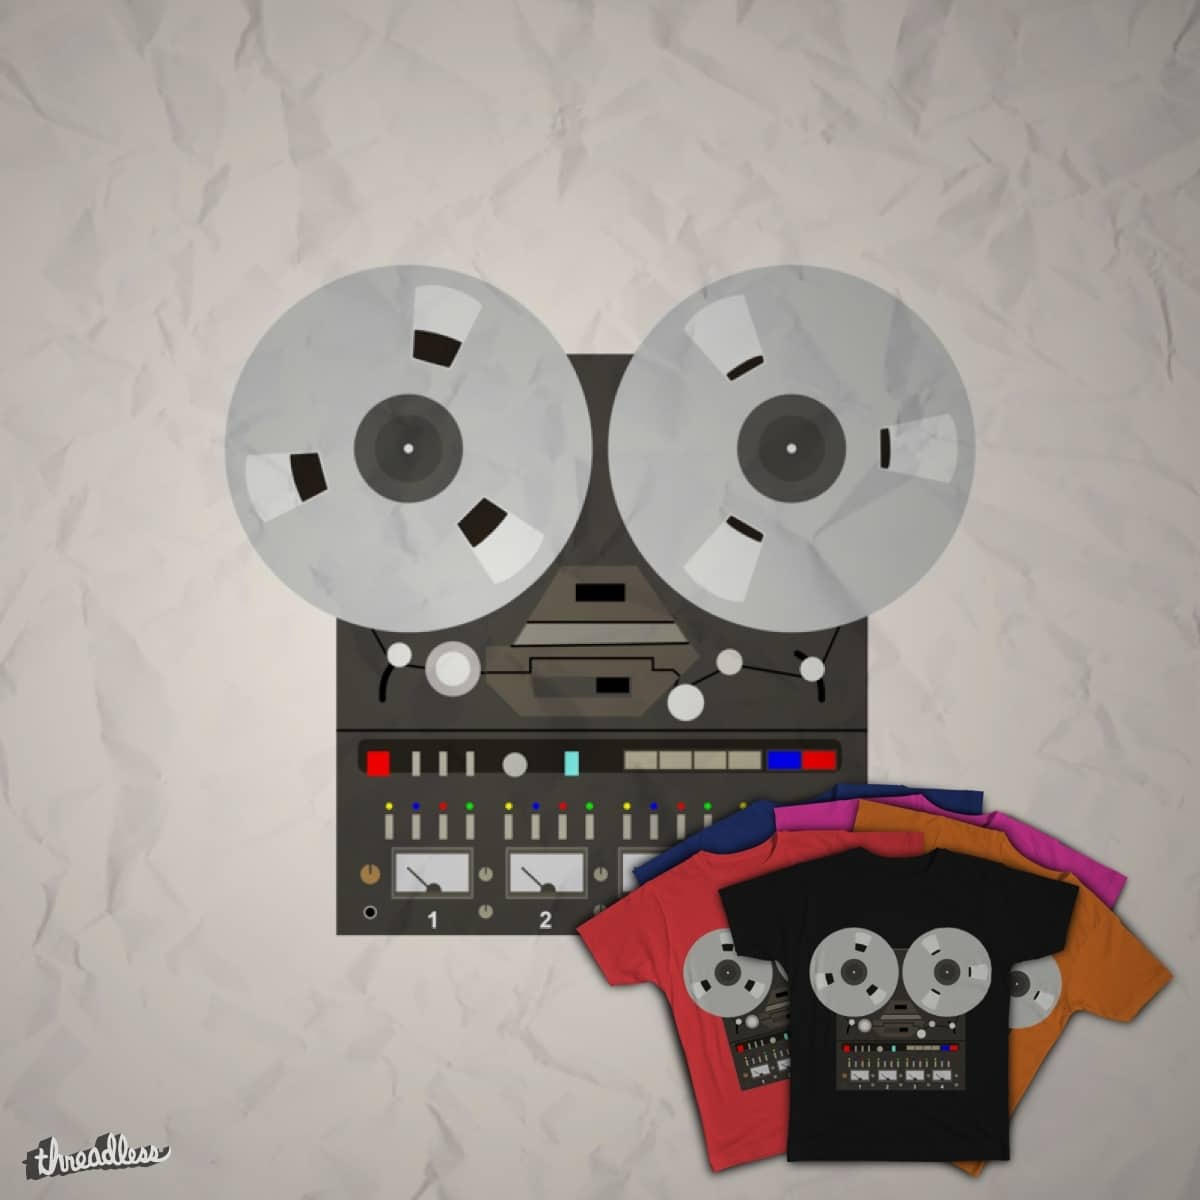 Open Reel Tape Recorder by rkrrk on Threadless